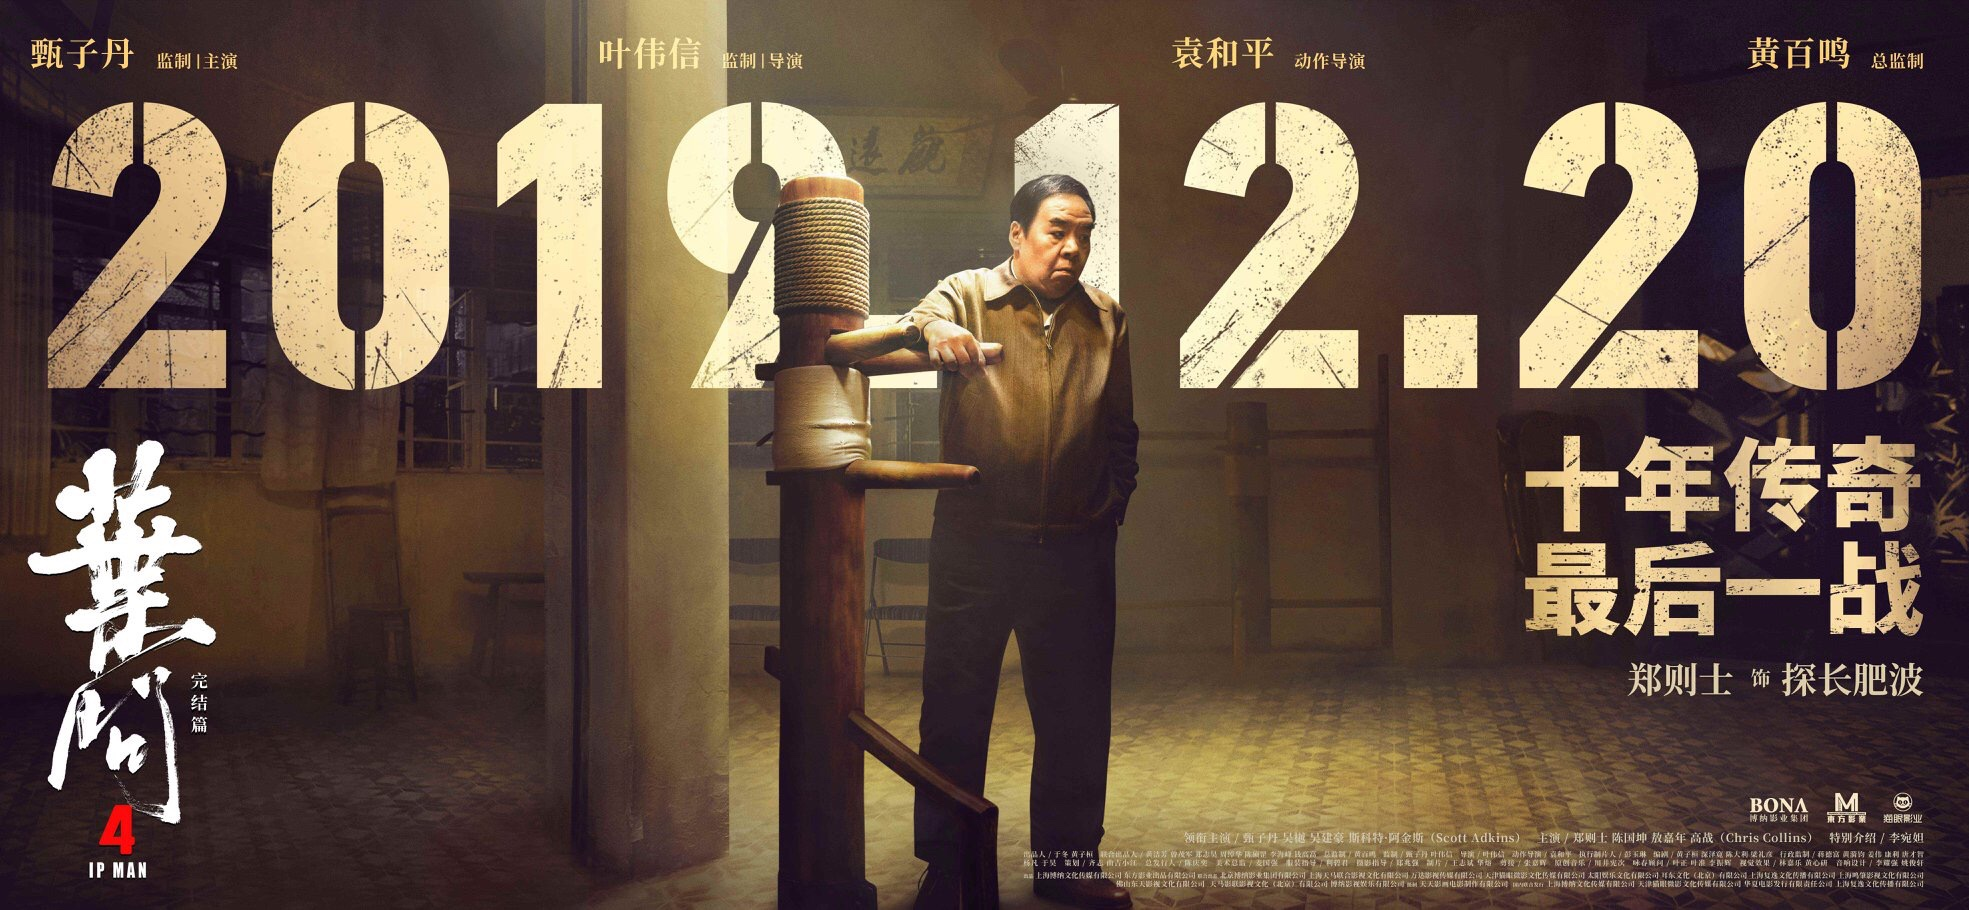 IP MAN 4: THE FINALE- Legends Converge on New Character ...